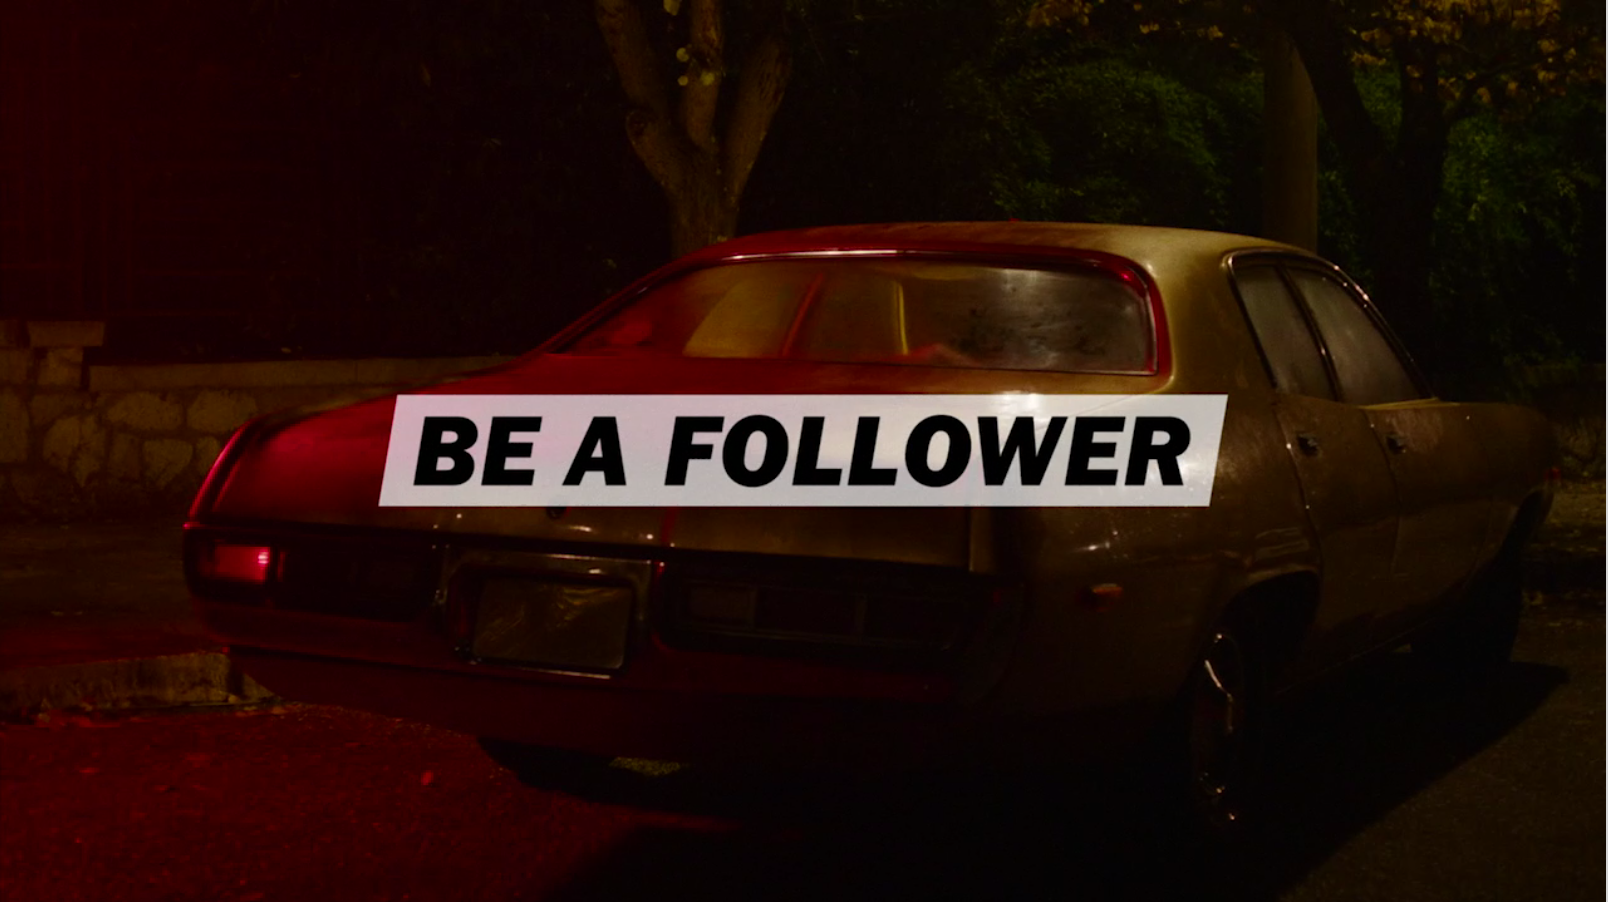 Be a follower Diesel | Collater.al 5